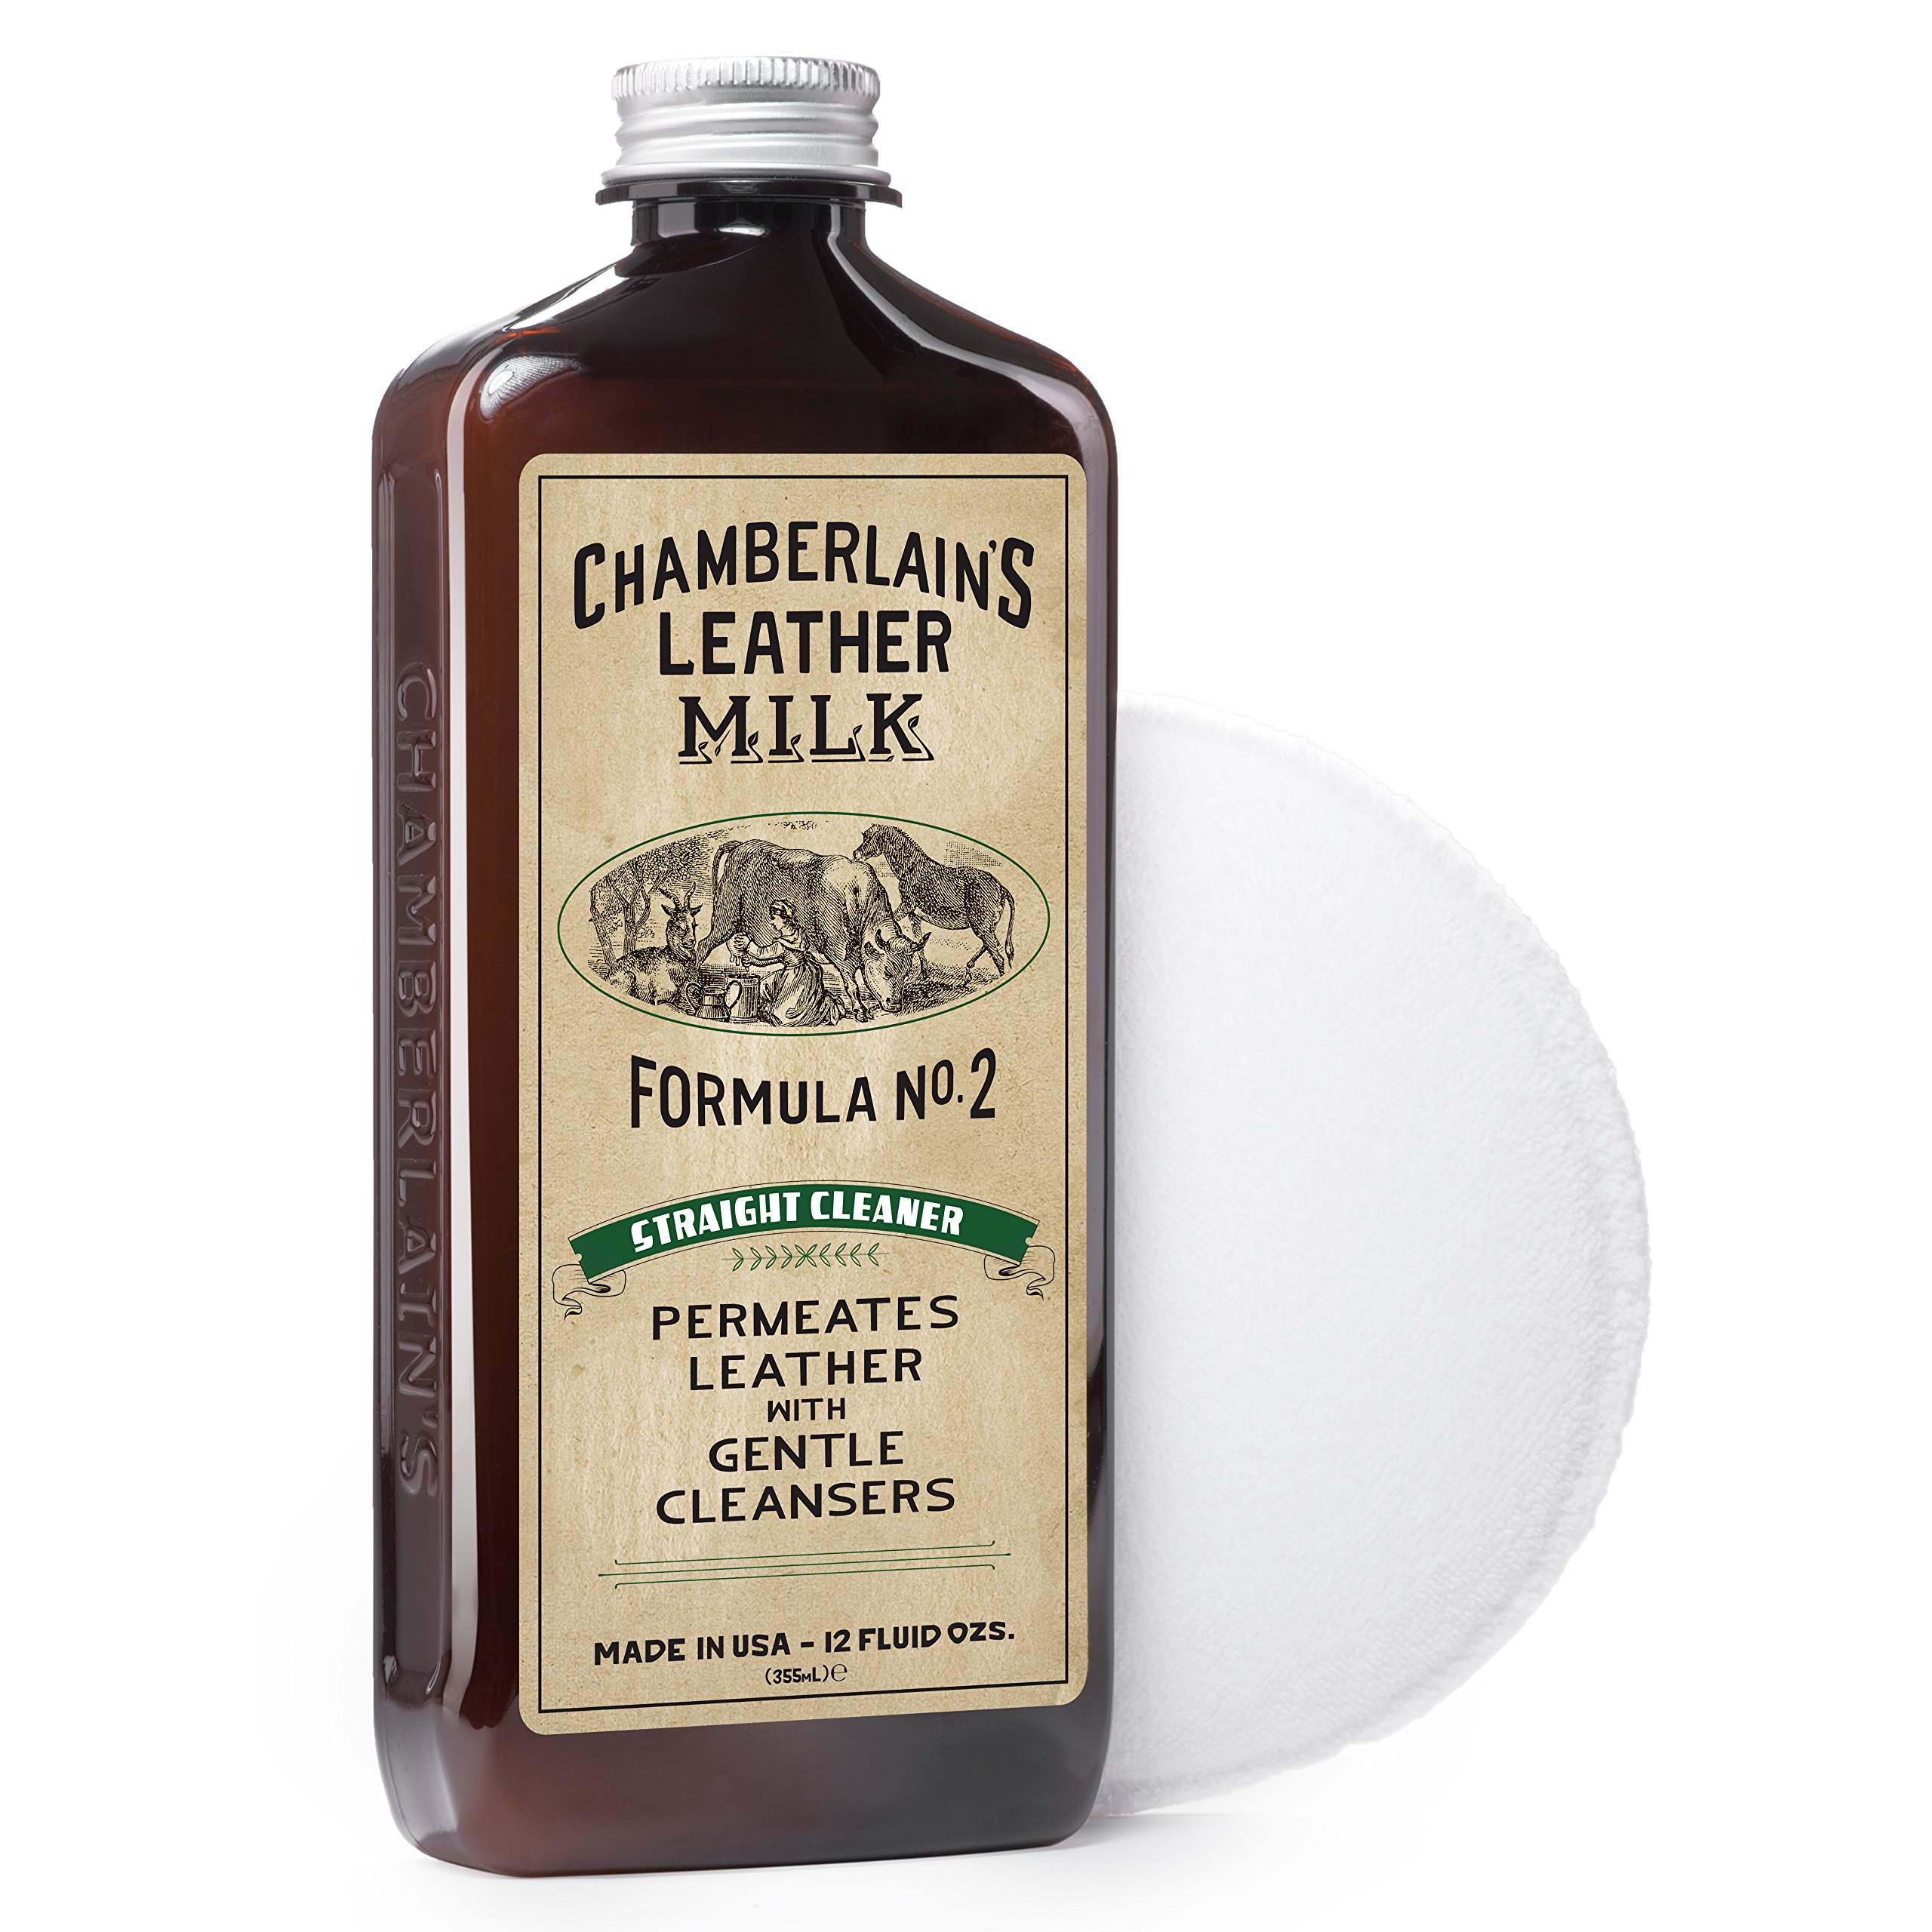 Leather Milk Auto Leather Cleaner & Conditioner Kit (2 Formula Car Detailing Set) - Straight Cleaner No. 2 + Auto Refreshener No. 4 - All Natural, Non-Toxic. Made in USA. Includes 2 Detailing Pads! by Chamberlain's Leather Milk (Image #8)